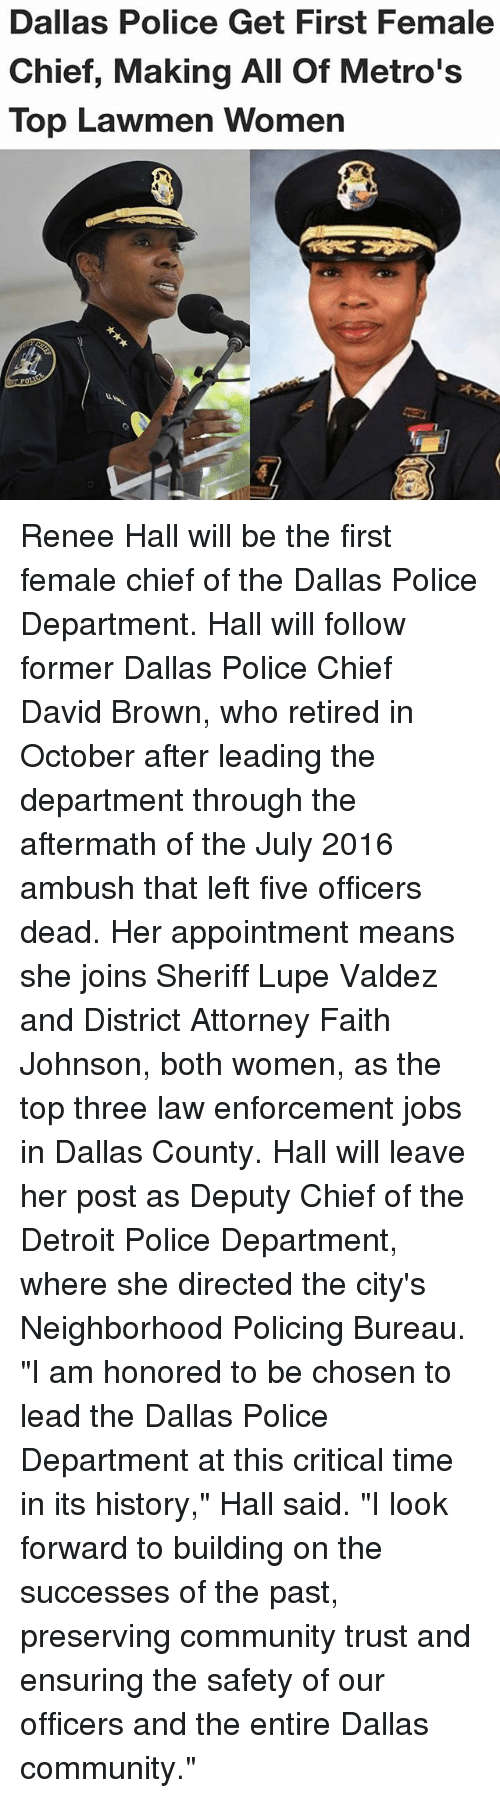 "Community, Detroit, and Memes: Dallas Police Get First Female  Chief, Making All Of Metro's  Top Lawmen Women Renee Hall will be the first female chief of the Dallas Police Department. Hall will follow former Dallas Police Chief David Brown, who retired in October after leading the department through the aftermath of the July 2016 ambush that left five officers dead. Her appointment means she joins Sheriff Lupe Valdez and District Attorney Faith Johnson, both women, as the top three law enforcement jobs in Dallas County. Hall will leave her post as Deputy Chief of the Detroit Police Department, where she directed the city's Neighborhood Policing Bureau. ""I am honored to be chosen to lead the Dallas Police Department at this critical time in its history,"" Hall said. ""I look forward to building on the successes of the past, preserving community trust and ensuring the safety of our officers and the entire Dallas community."""